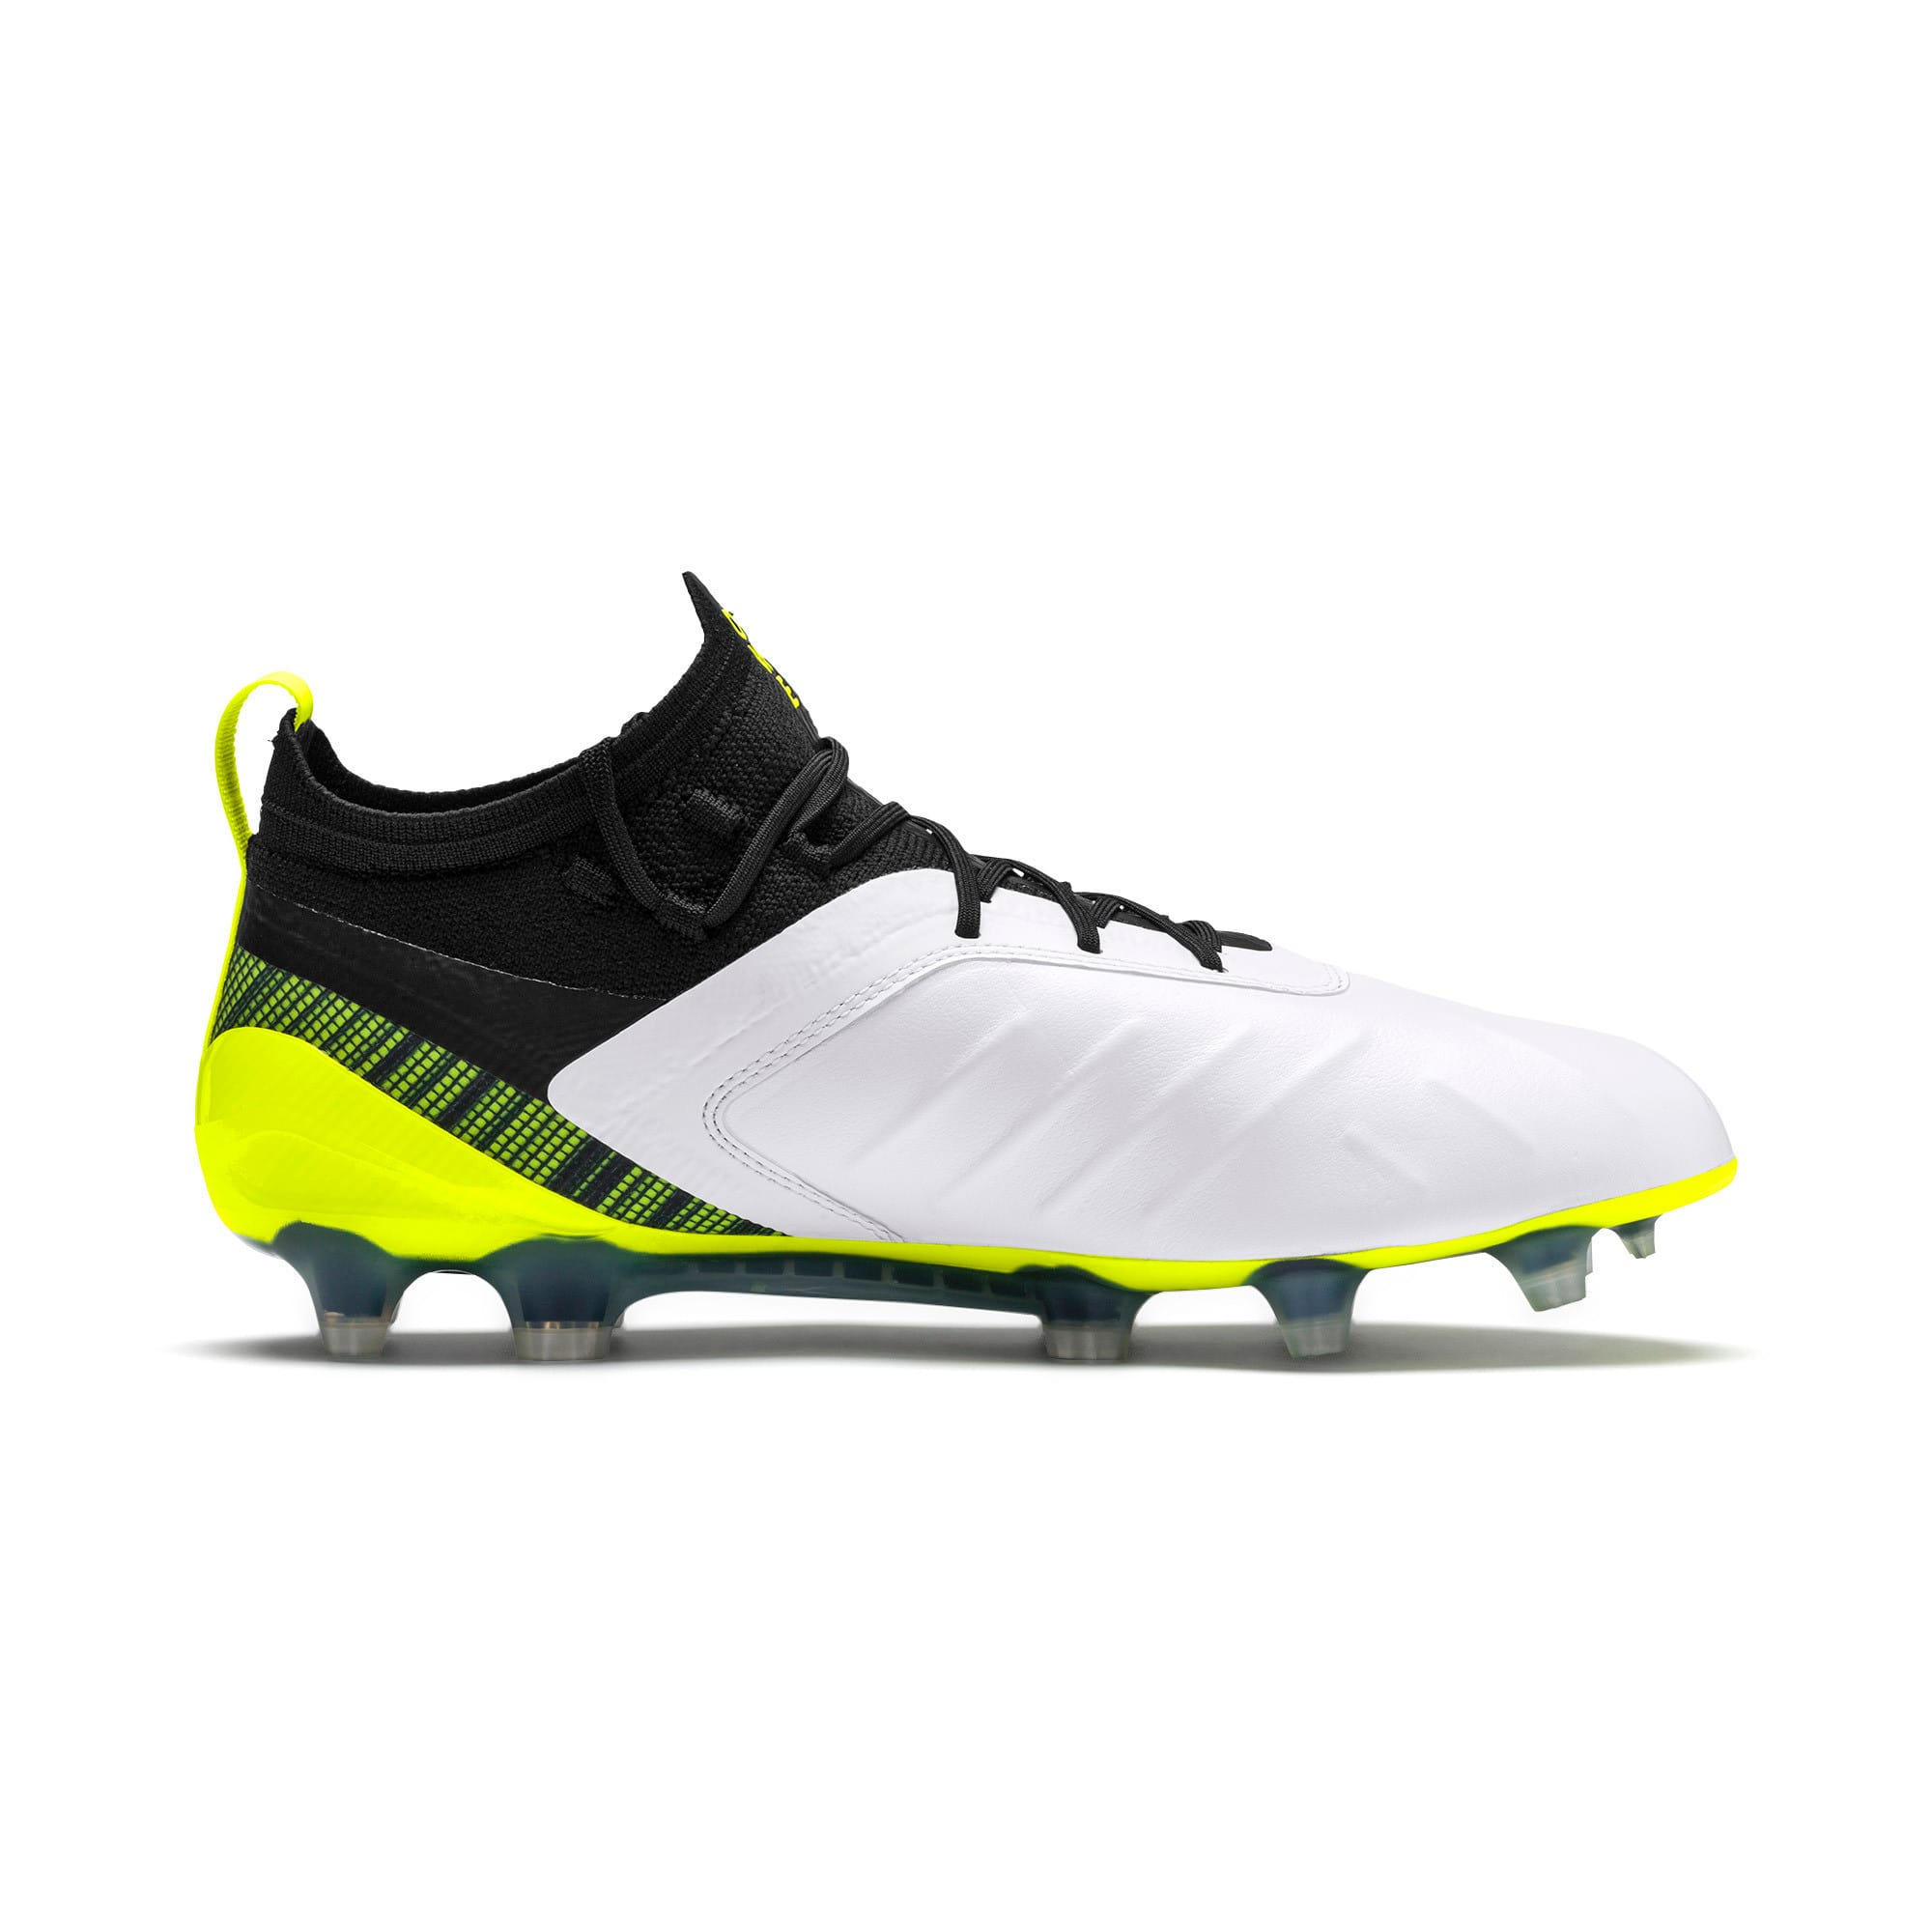 Thumbnail 6 of PUMA ONE 5.1 FG/AG Men's Soccer Cleats, White-Black-Yellow Alert, medium